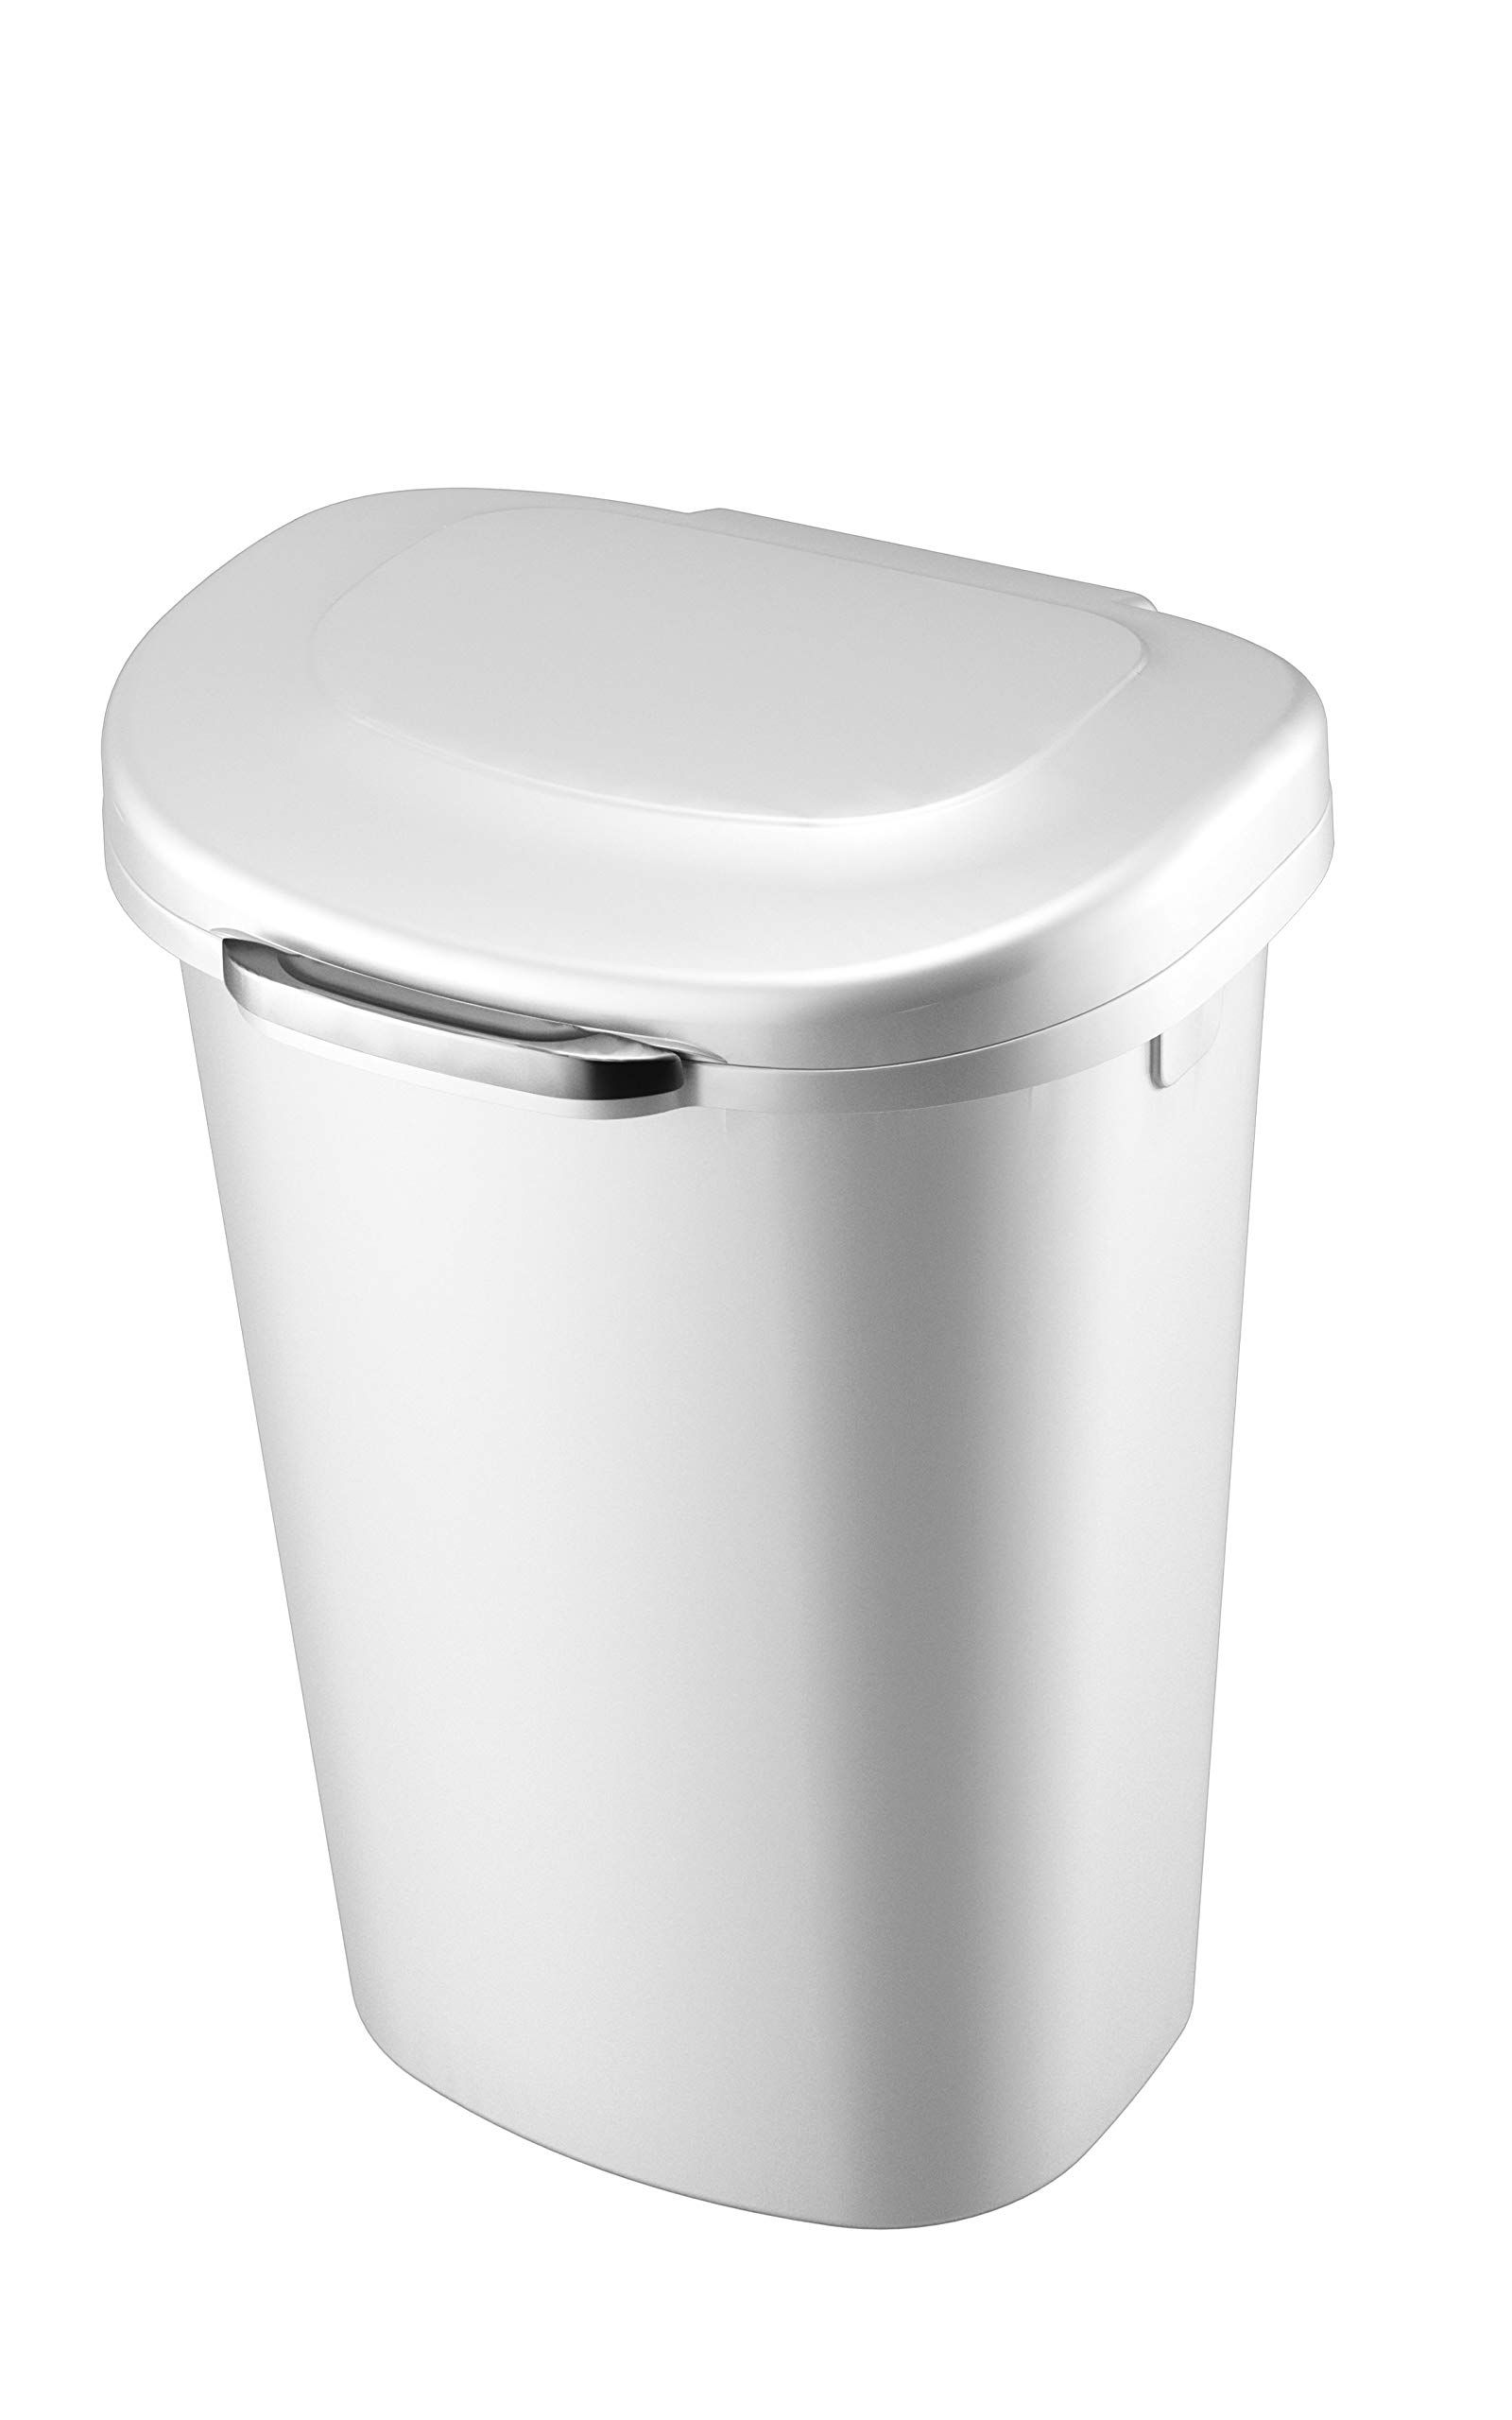 Rubbermaid Touch Top Lid Trash C Trash Can Rubbermaid Waste Basket